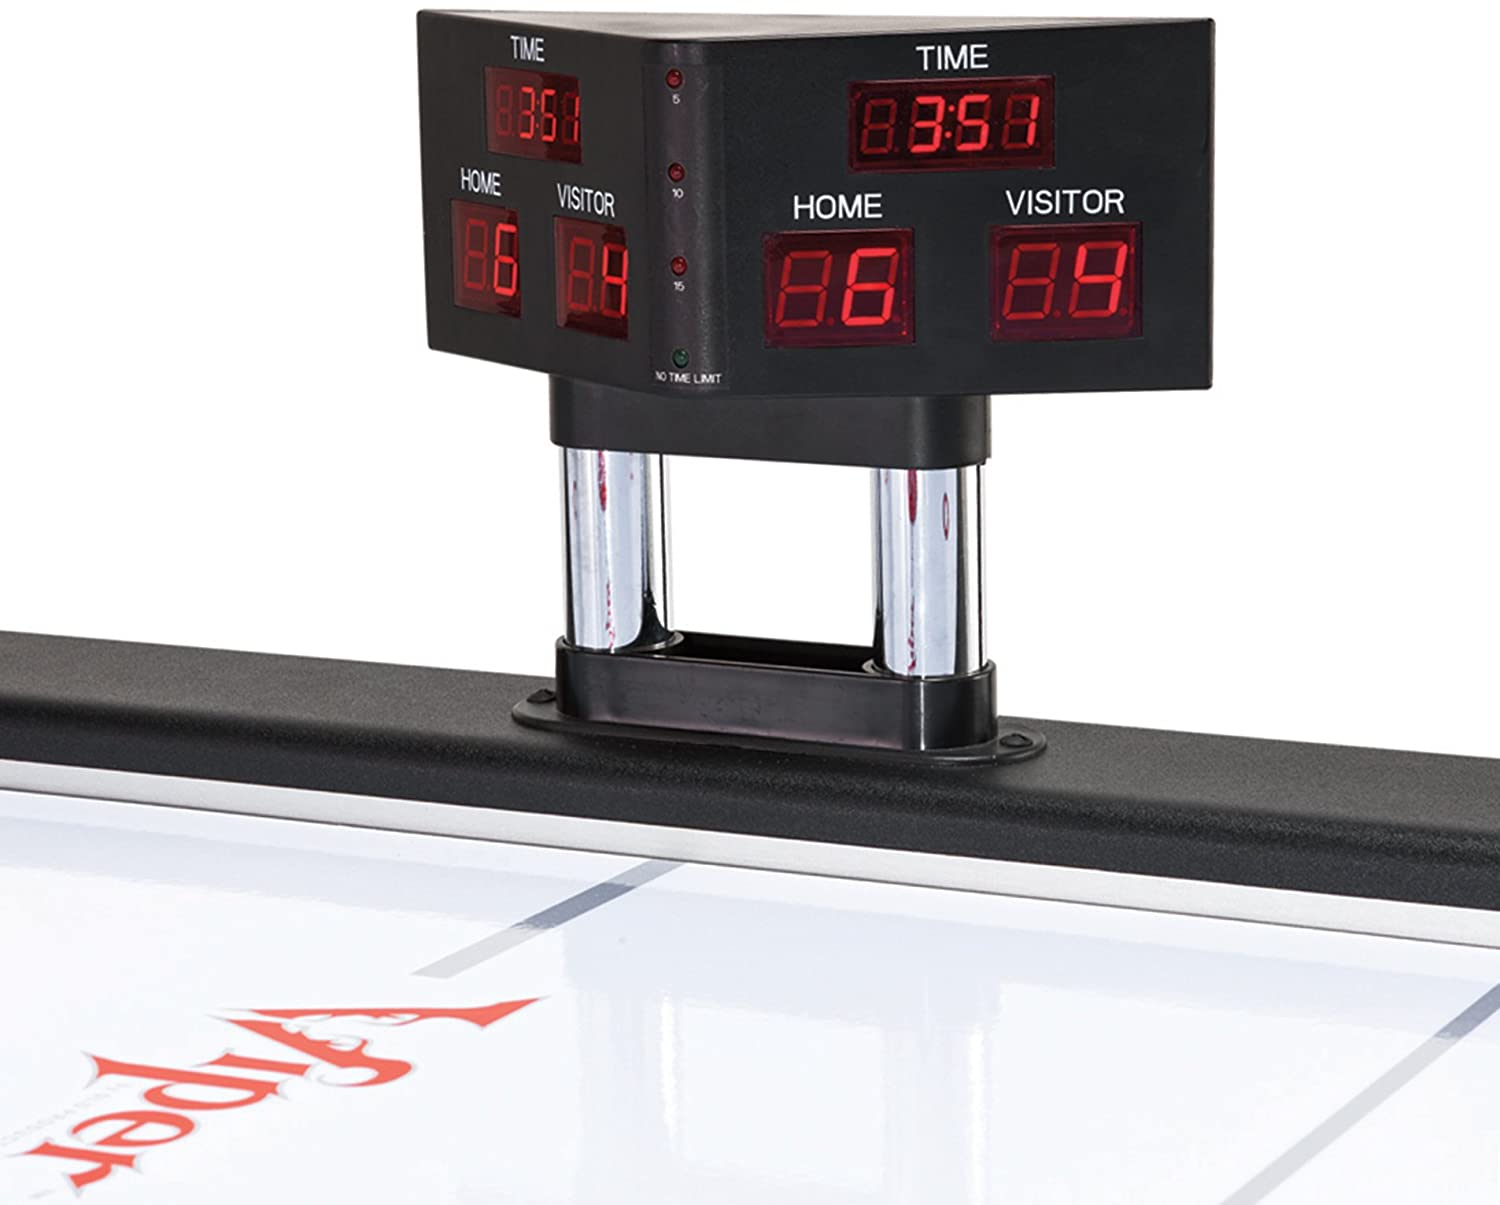 Amazon viper vancouver 75 foot air hockey game table air amazon viper vancouver 75 foot air hockey game table air hockey equipment sports outdoors keyboard keysfo Images